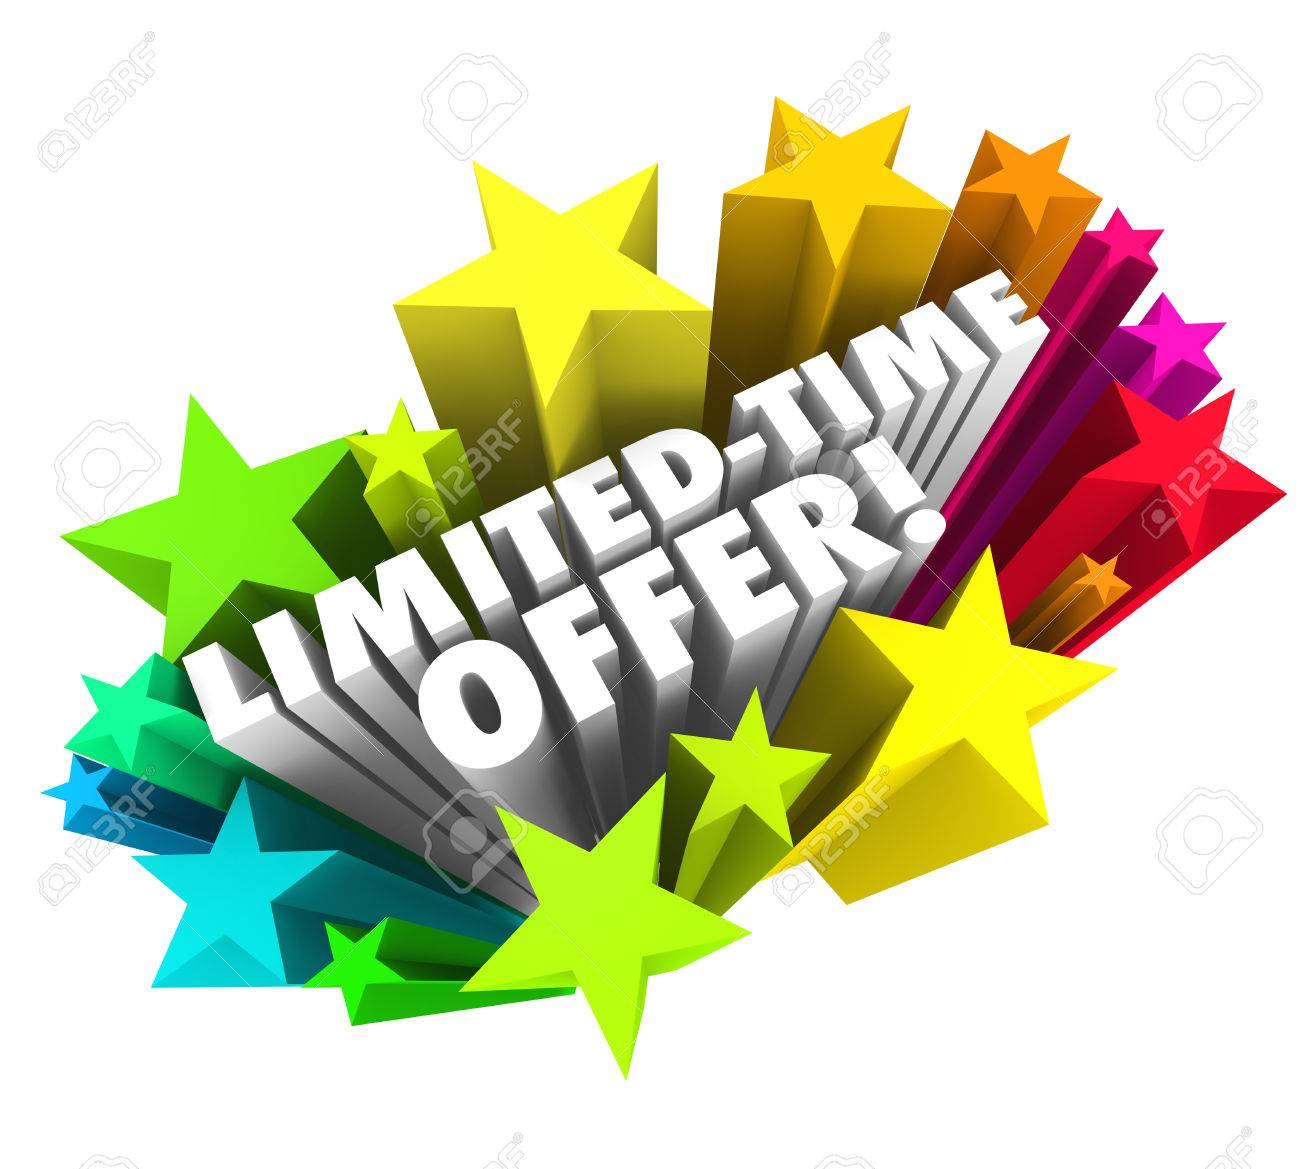 4ee03fa14 Limited Time Offer words in 3d white letters surrounded by colorful stars  advertising a special savings